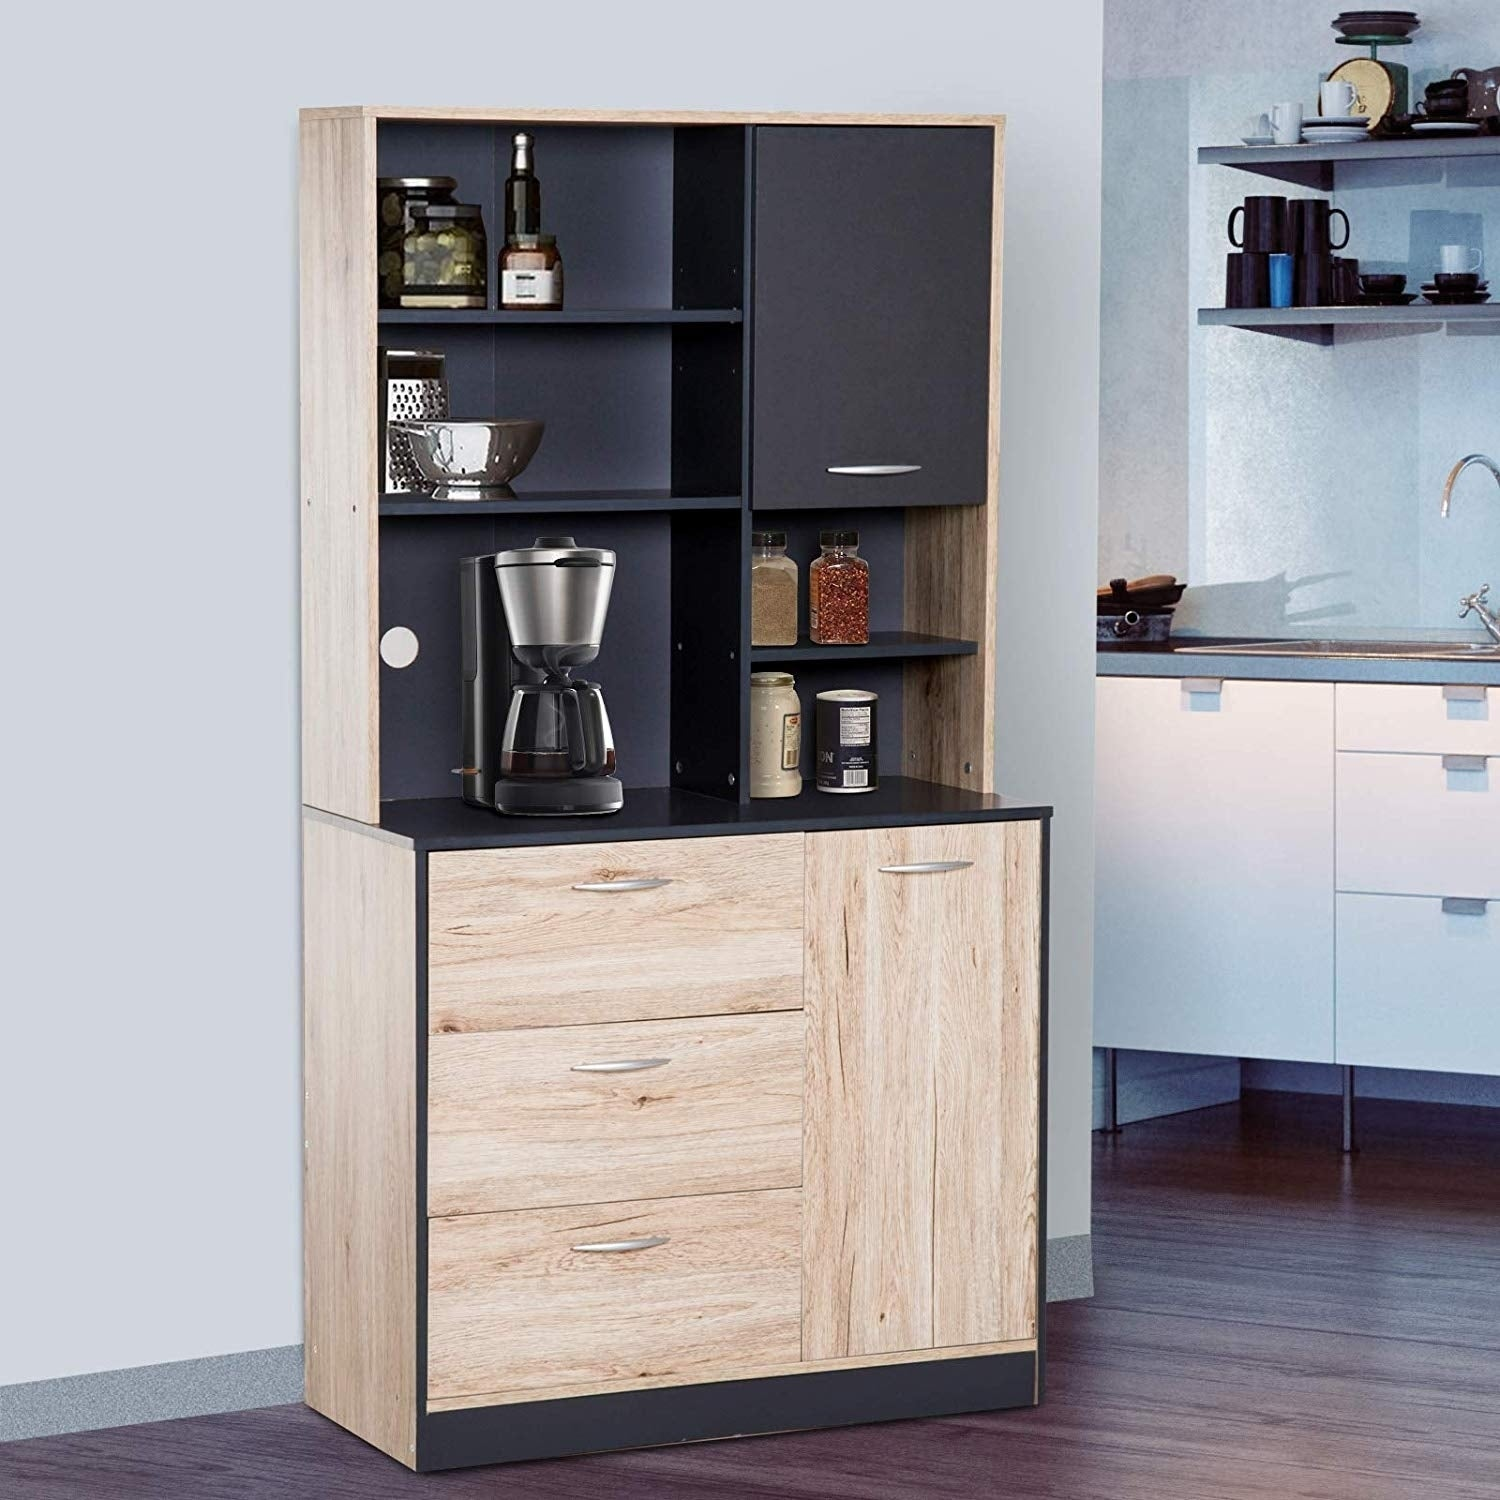 Image of: Shop Black Friday Deals On Carbon Loft Smothers 67 Inch Kitchen Buffet Cabinet With Microwave Storage Hutch On Sale Overstock 28288354